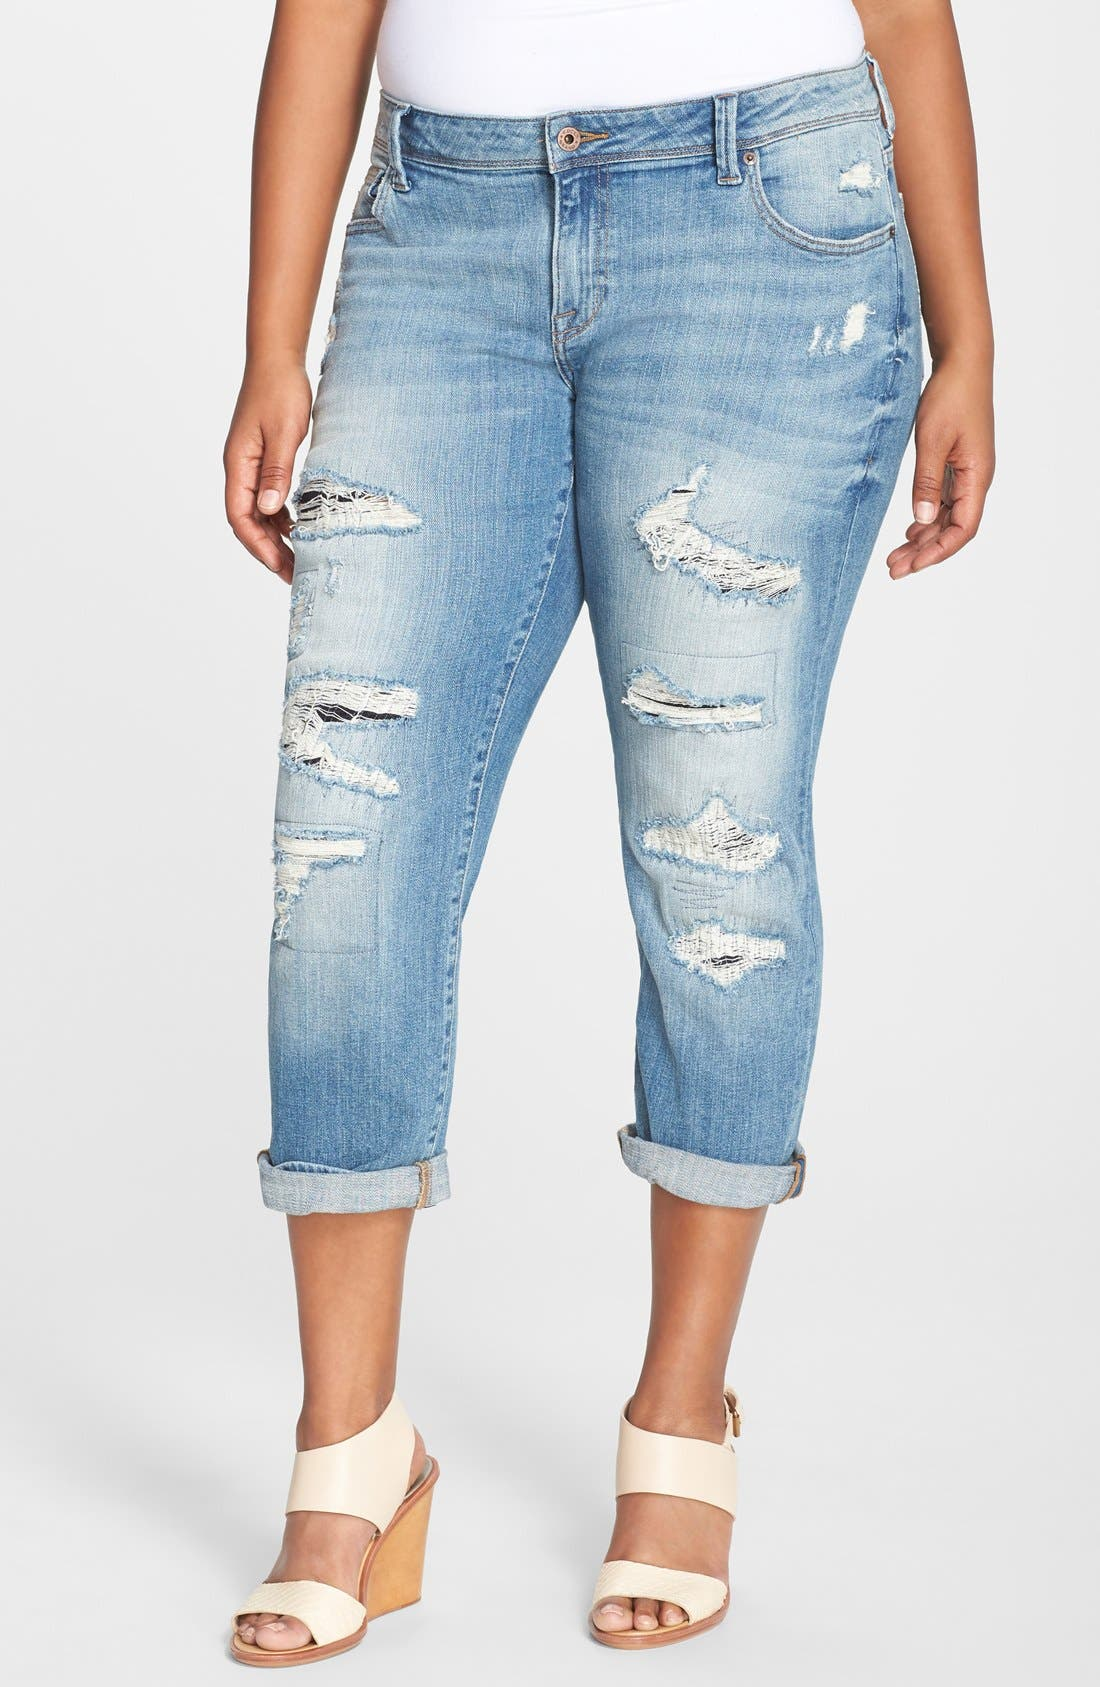 Main Image - Lucky Brand 'Reese' Ripped Boyfriend Jeans (San Marcos) (Plus Size)